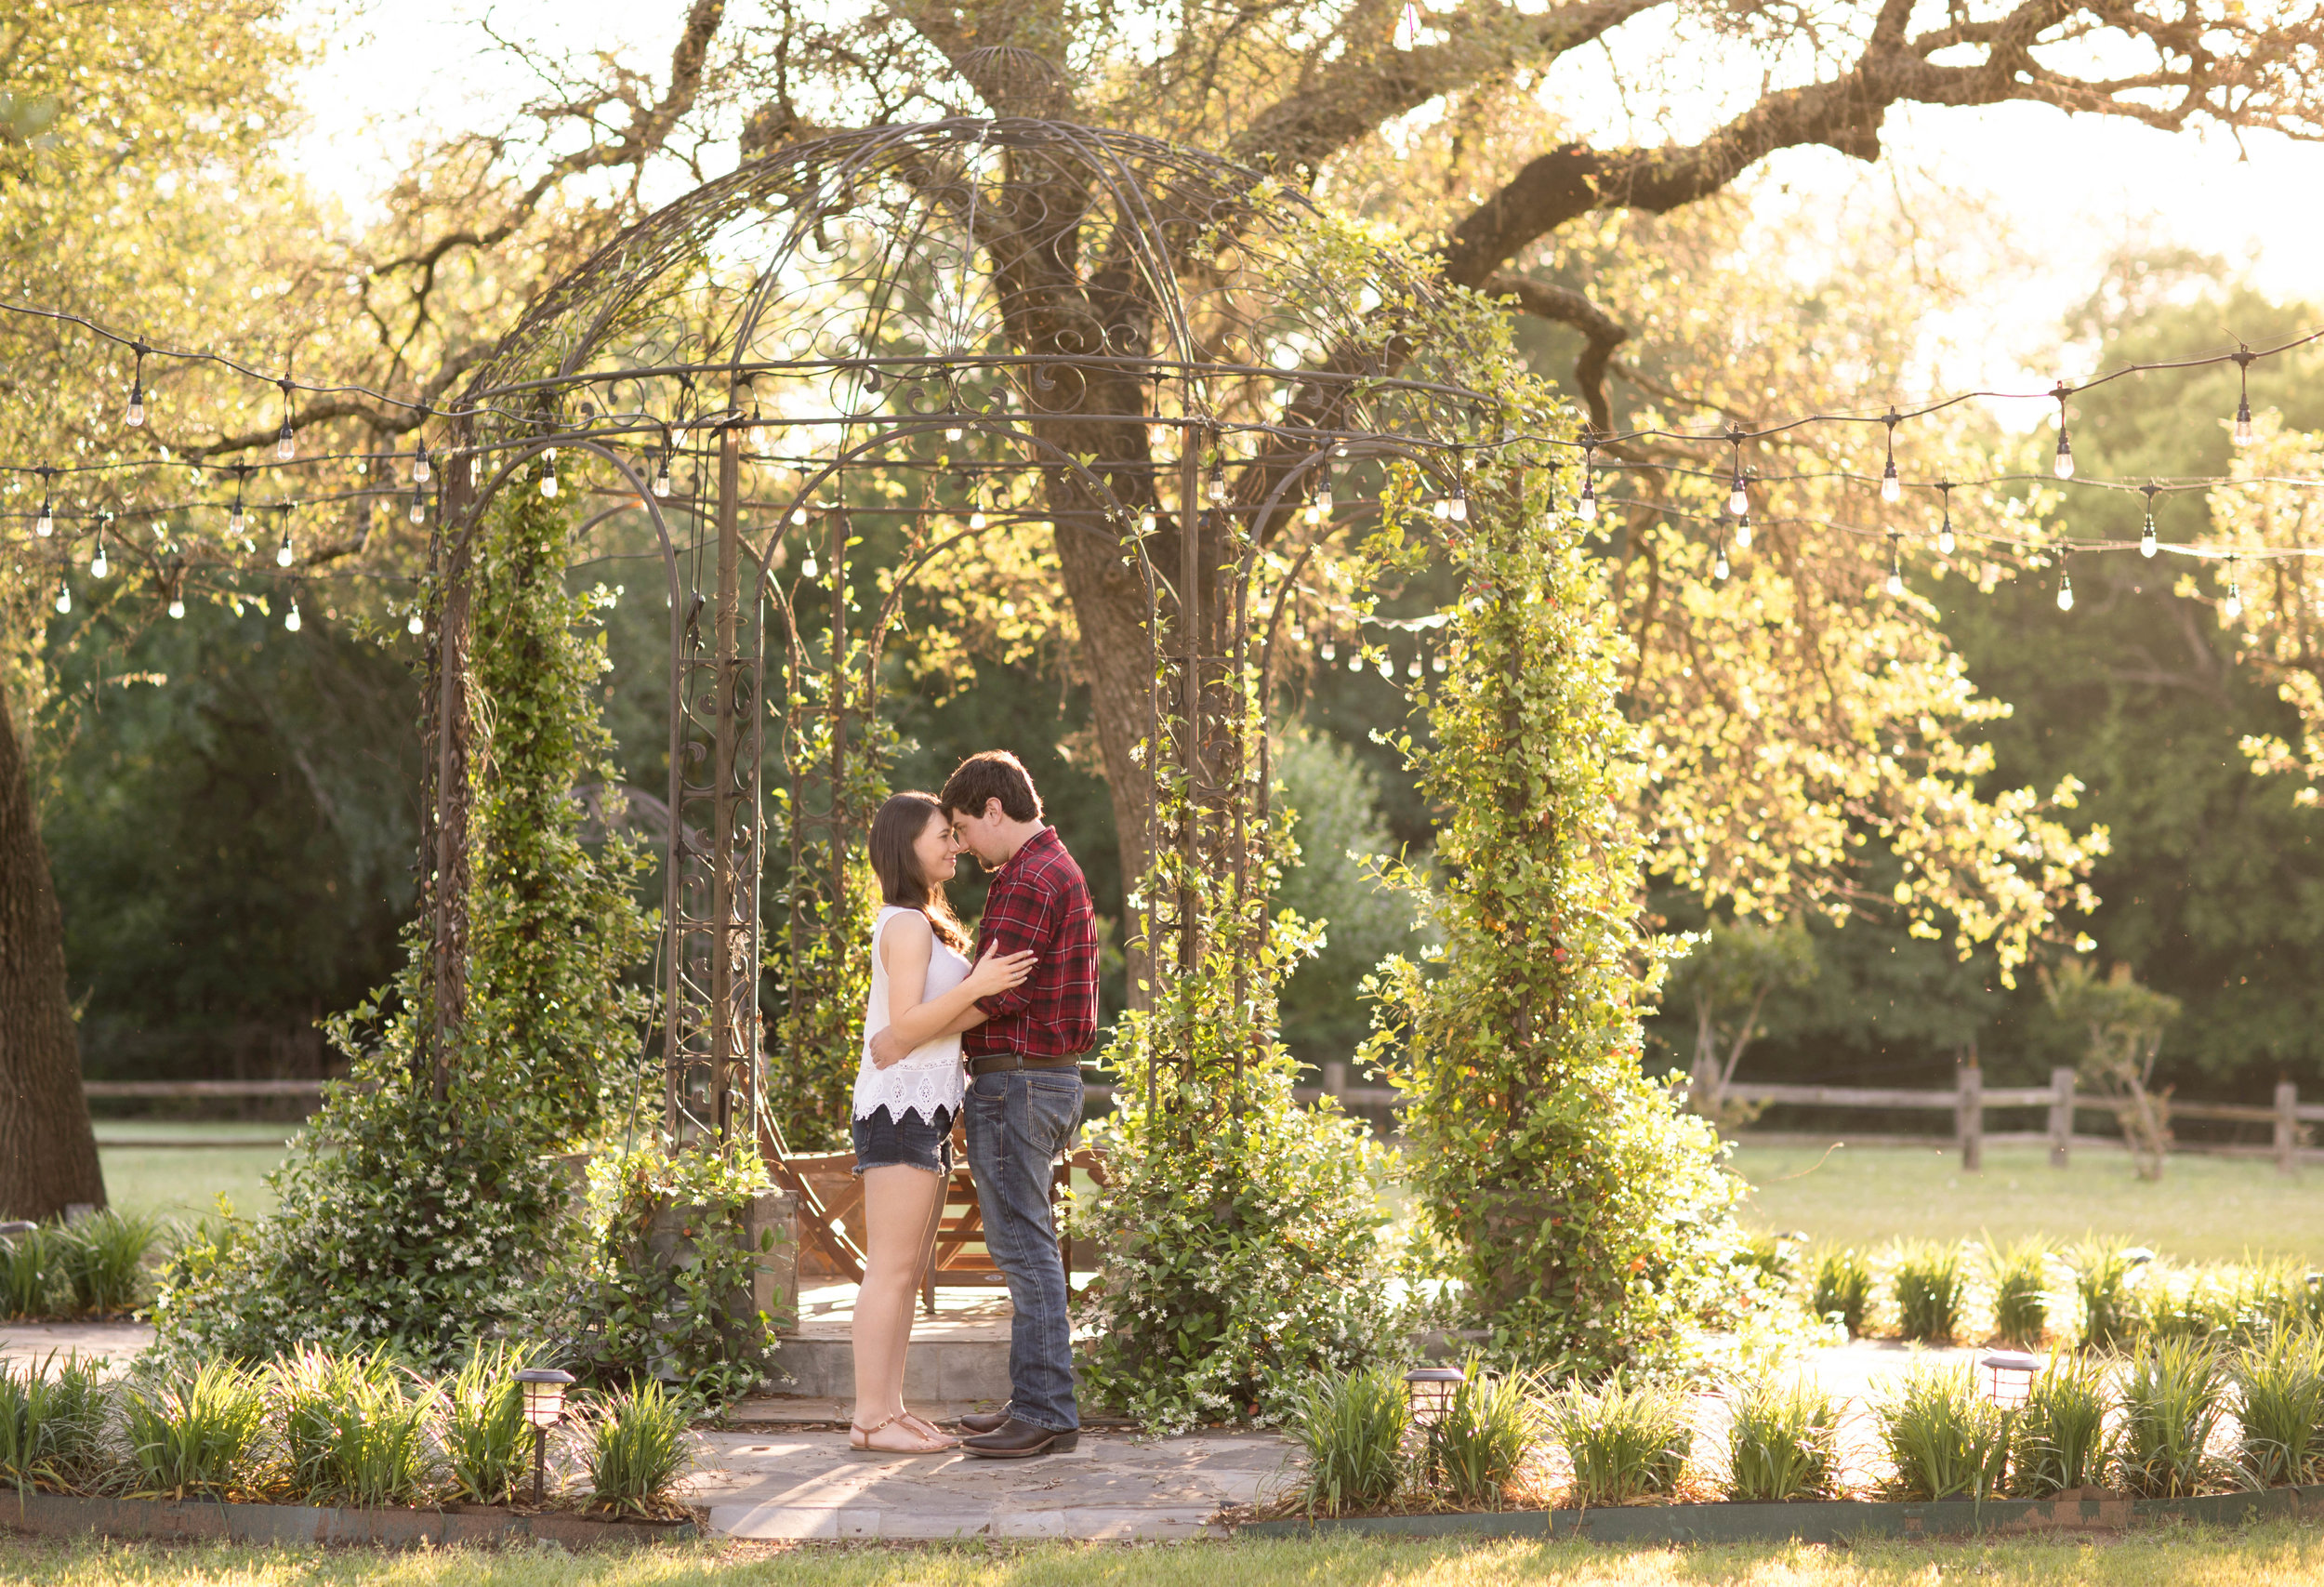 Photo taken in Waco, Texas, at the beautiful property of  The Cottage at Tell Story Walk   Blog Post coming this summer!